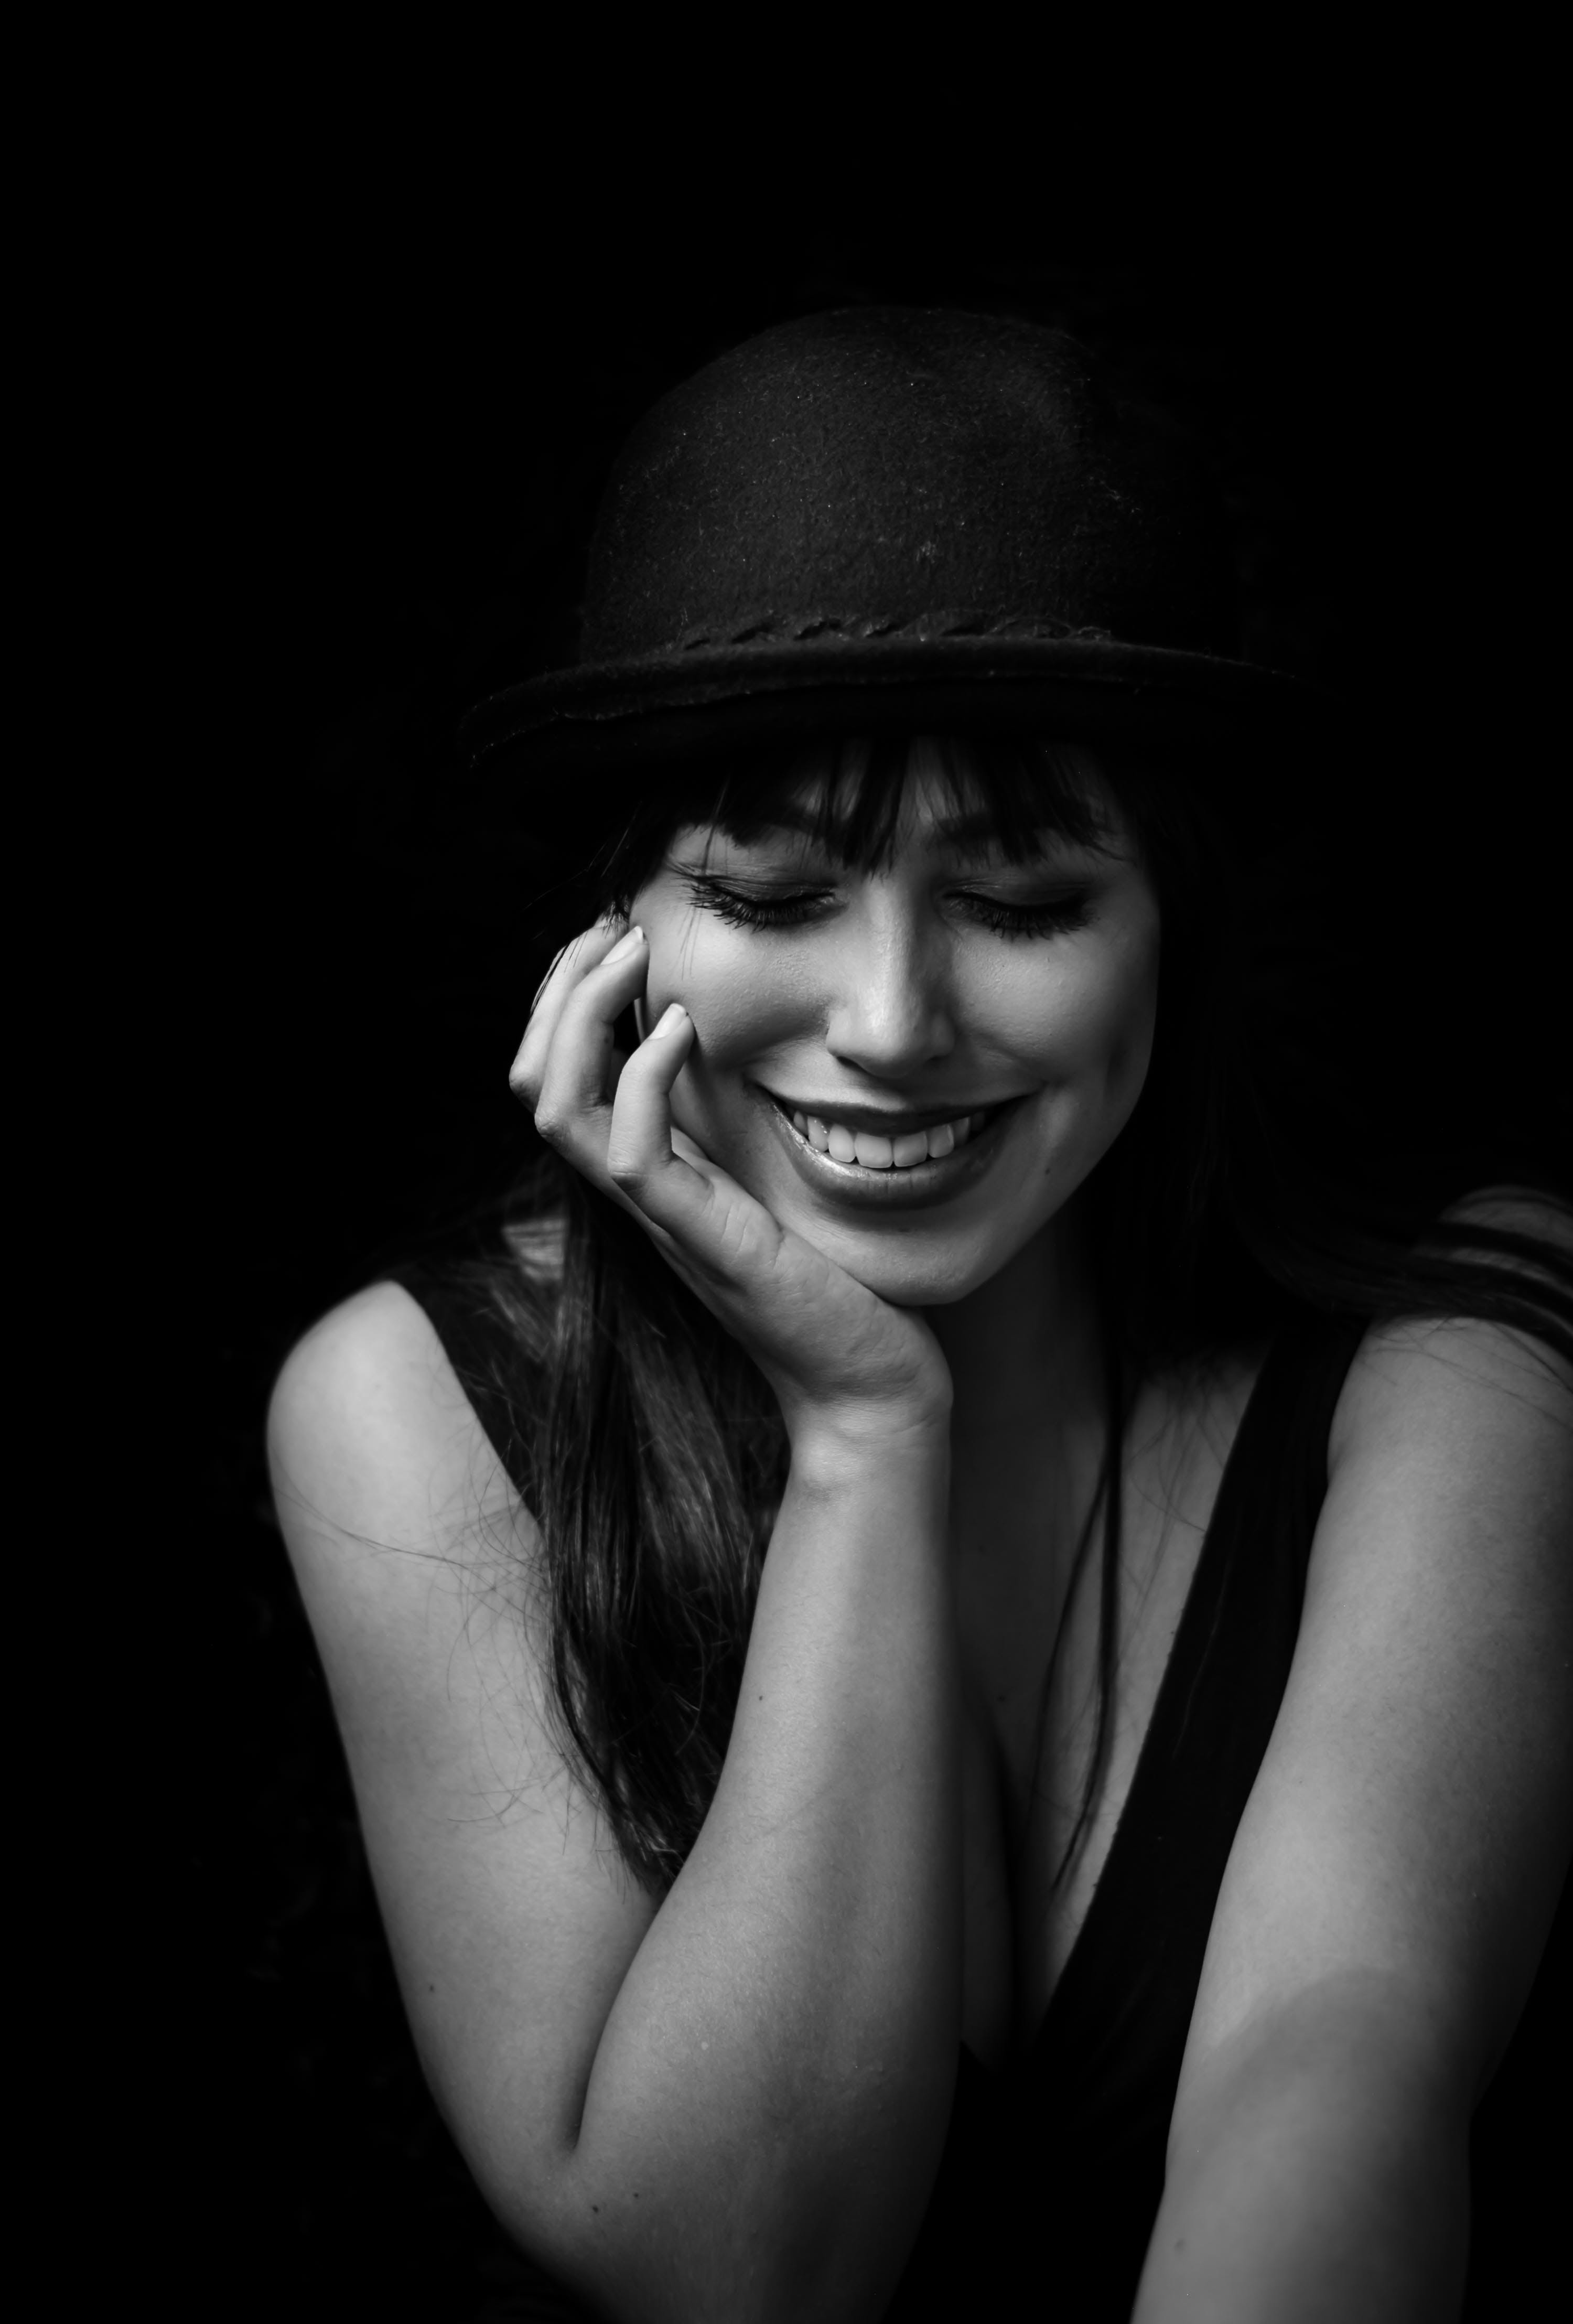 Grayscale Photography of Smiling Woman Putting Hands on Face